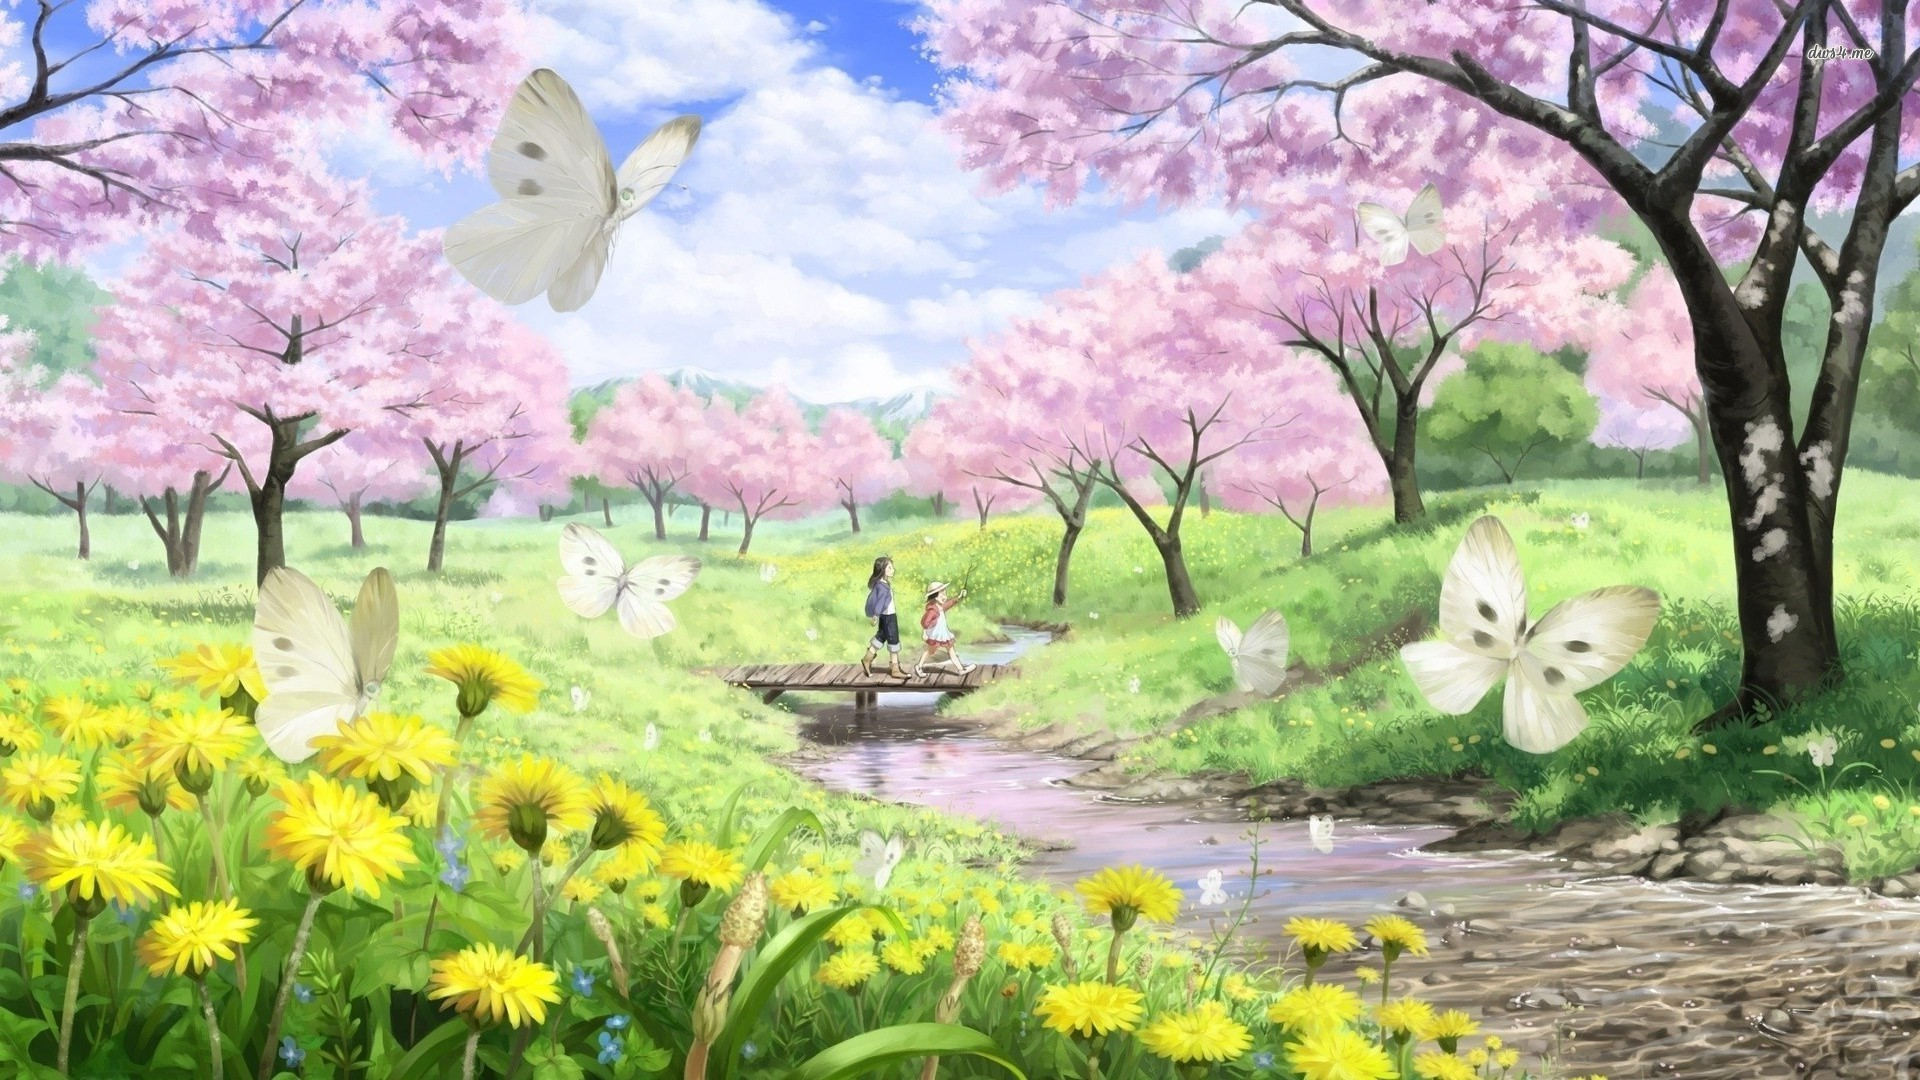 1920x1080 spring desktop background pictures free